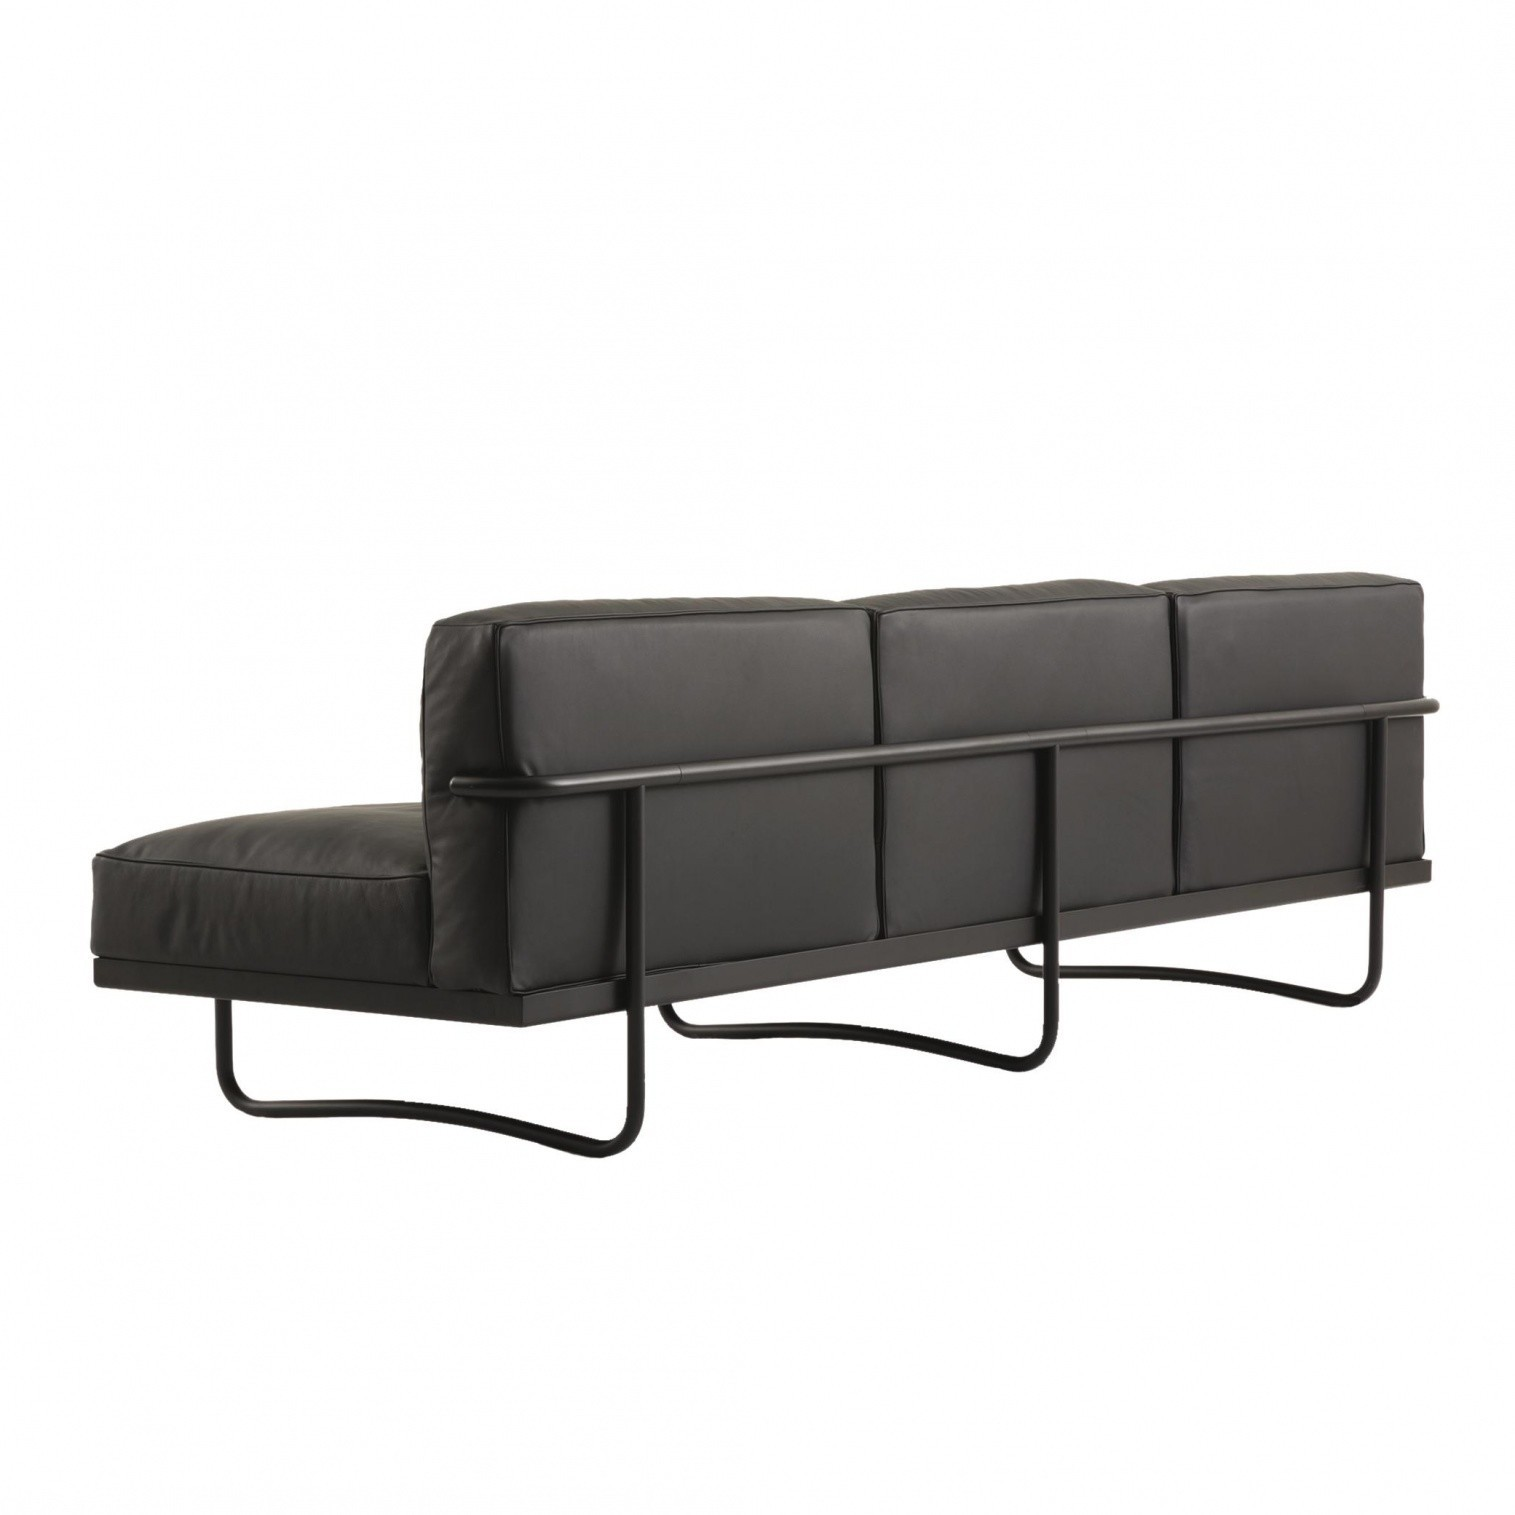 cassina le corbusier lc5 - canapé 3 places | ambientedirect